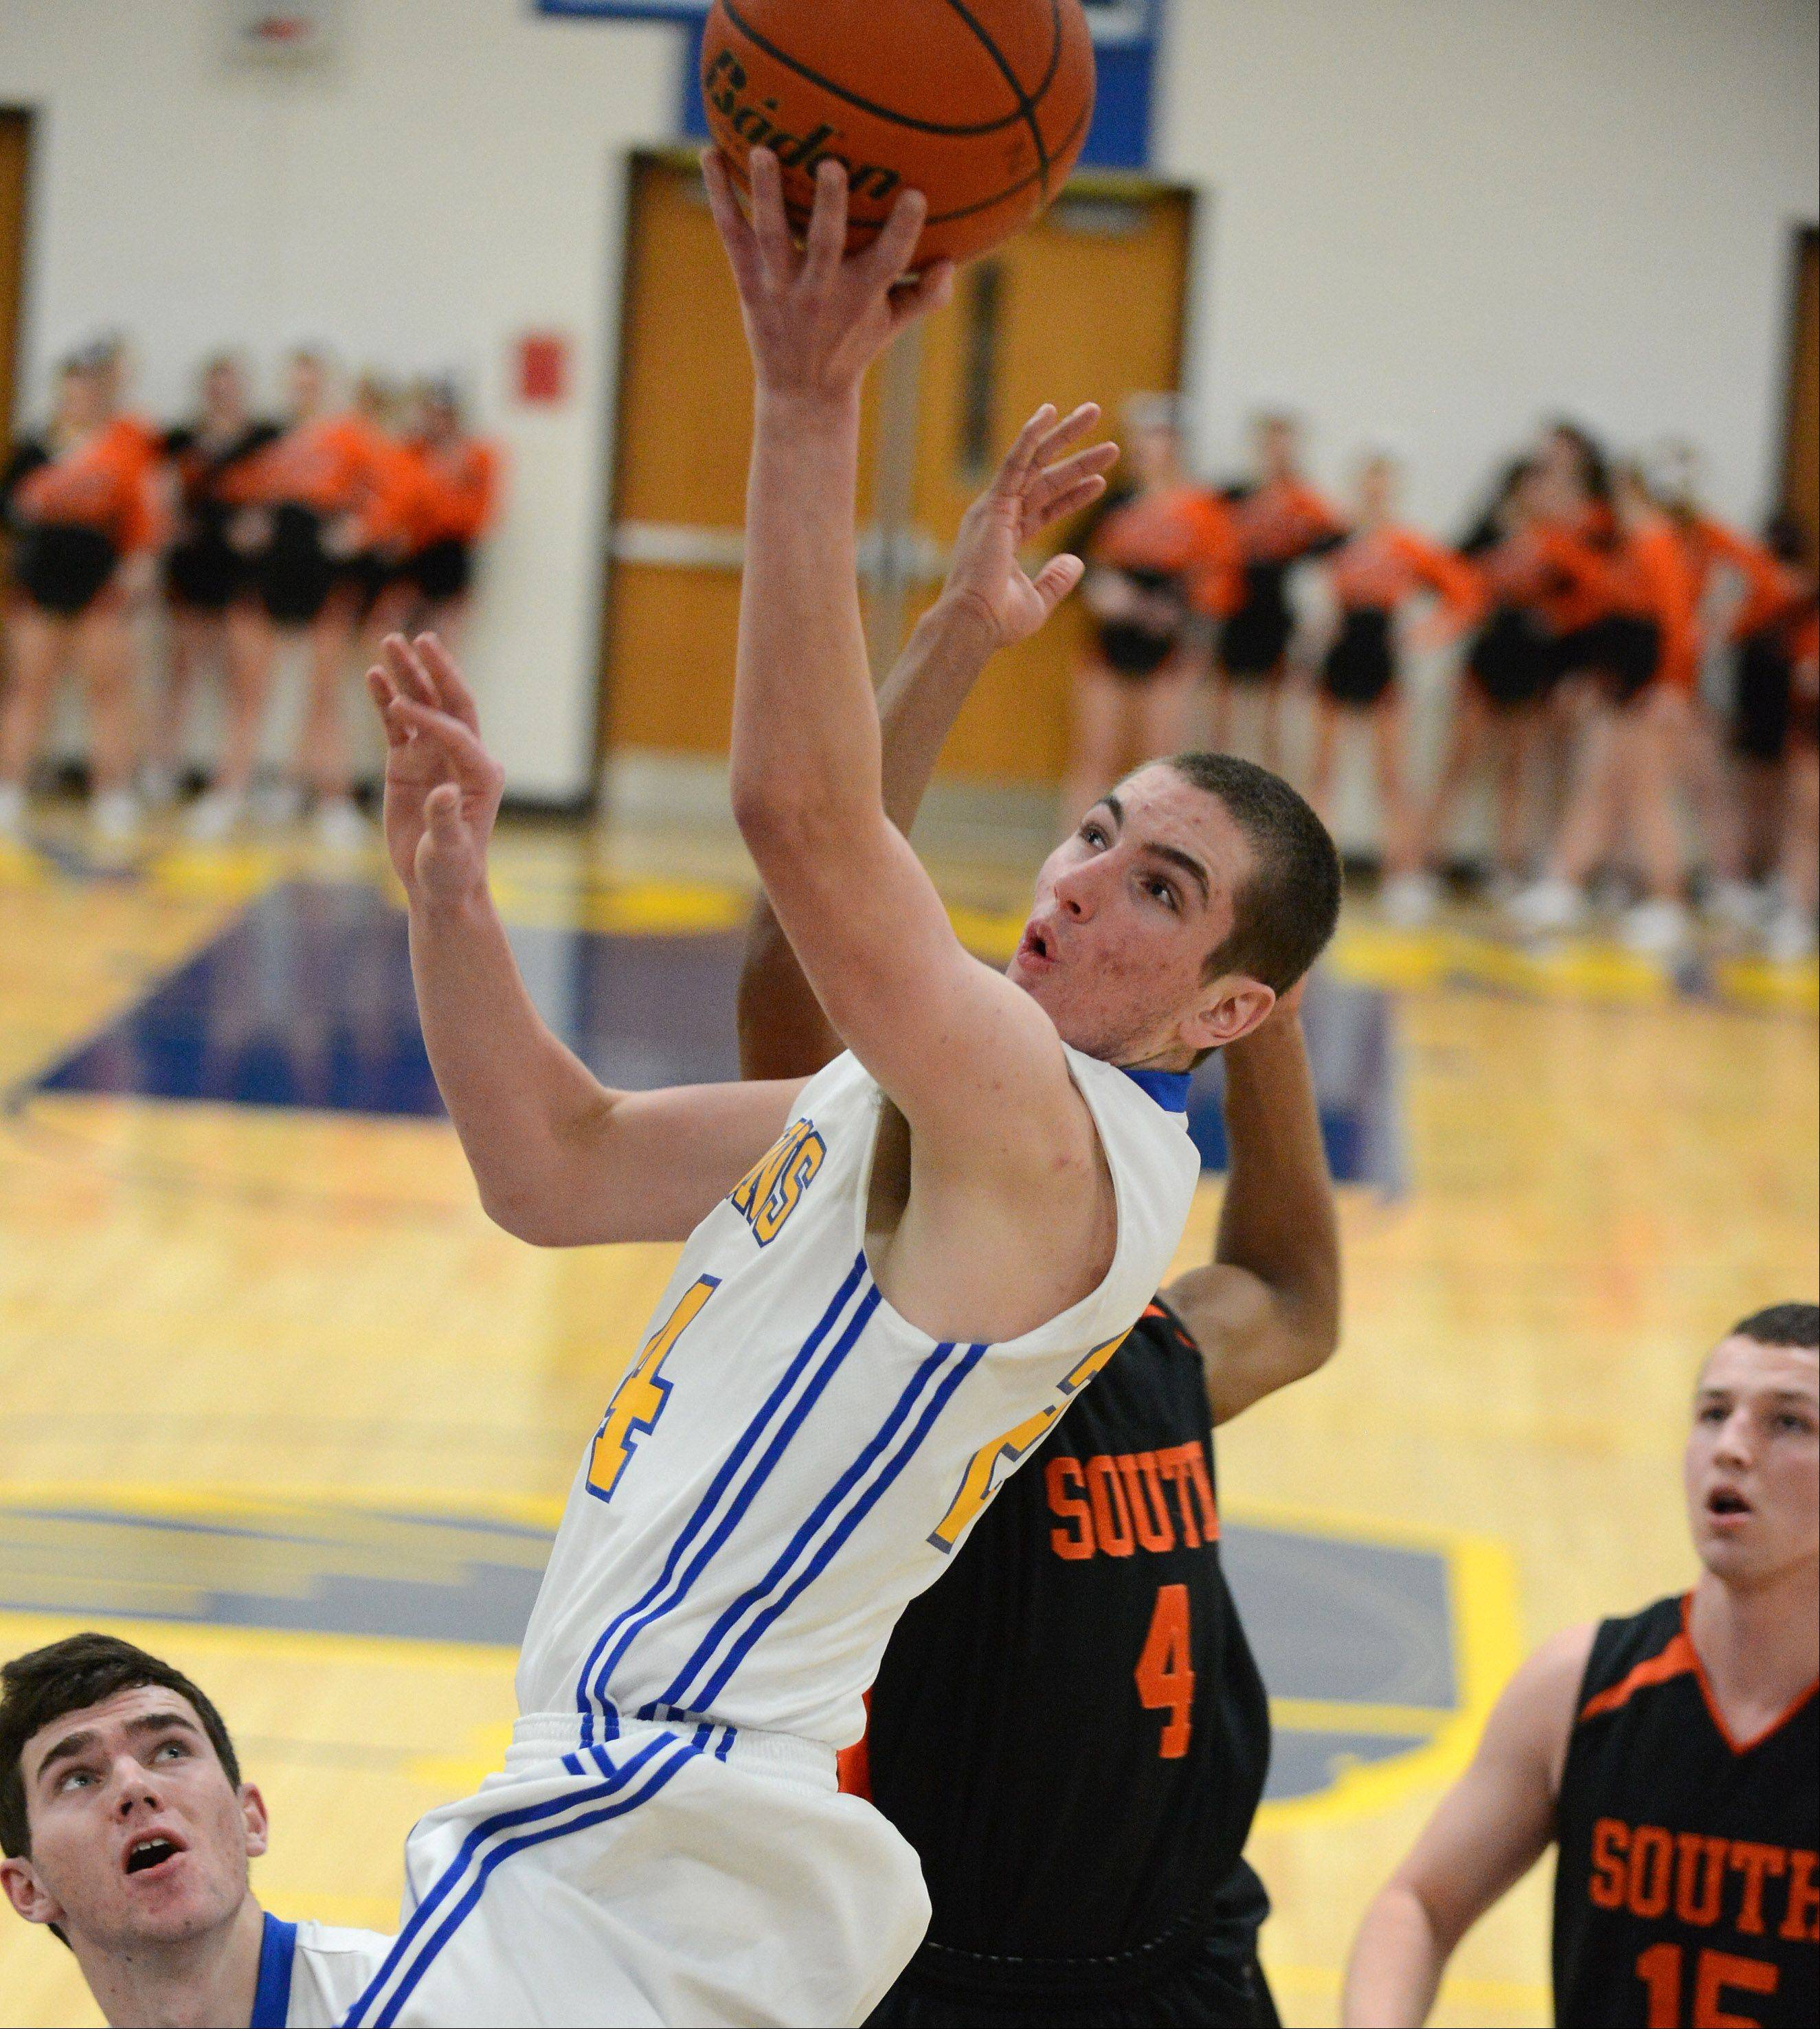 Wheaton North's Nick Traversa glides to the basket against Wheaton Warrenville South.